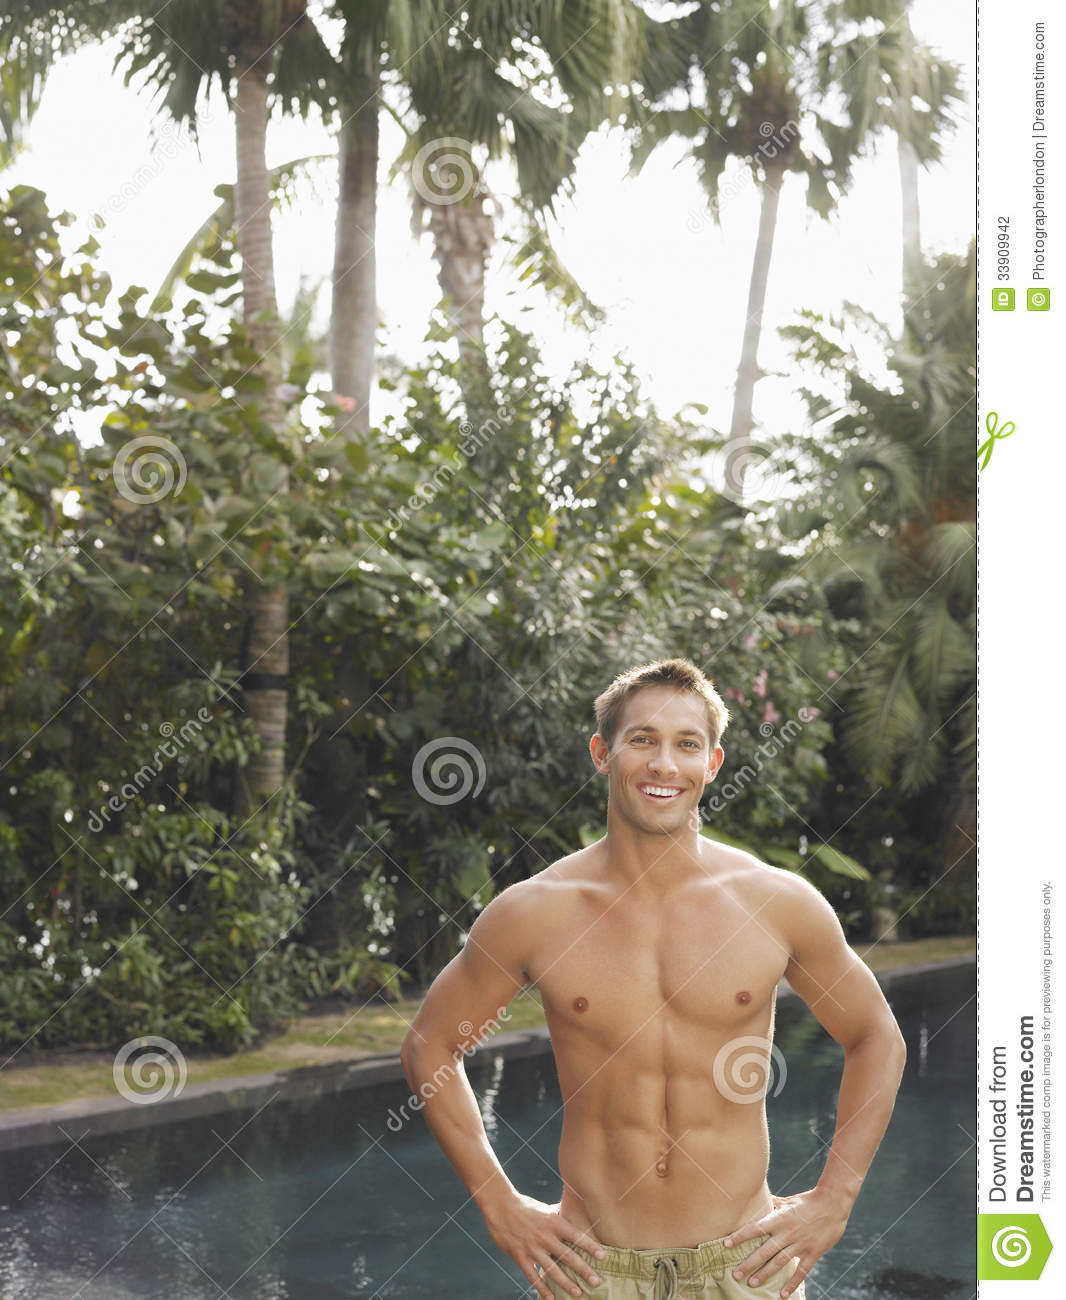 shirtless picture online dating I have been a member of a popular online dating service for a little over a year now, and i have to say that, overall, i'm pleasantly surprised by the quality of men i've met online while i.